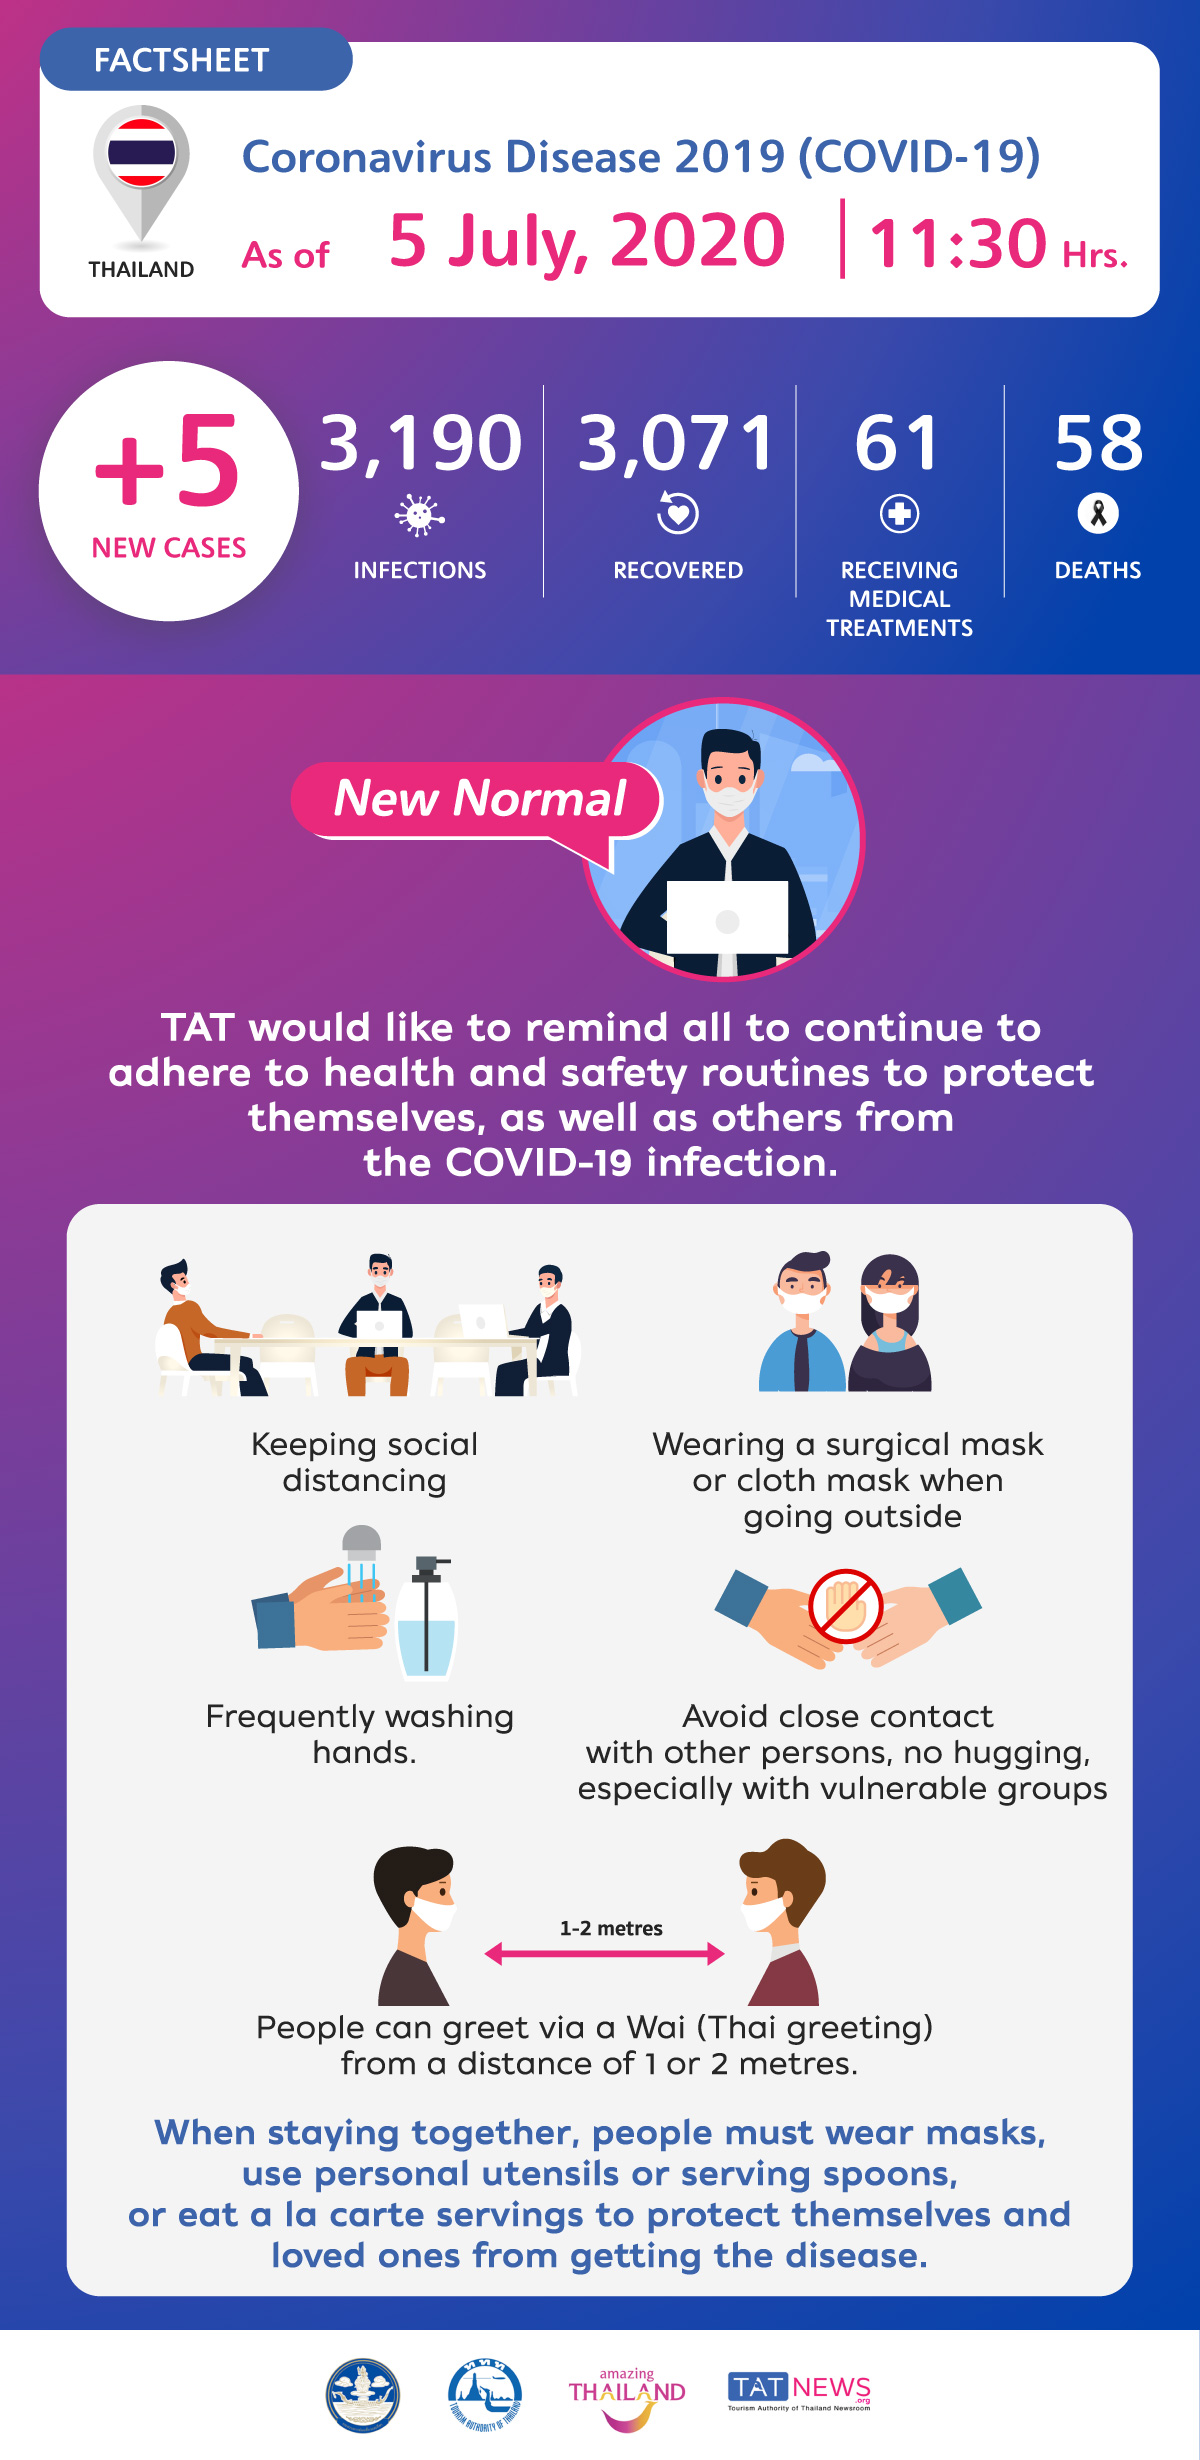 Coronavirus Disease 2019 (COVID-19) situation in Thailand as of 5 July 2020, 11.30 Hrs.